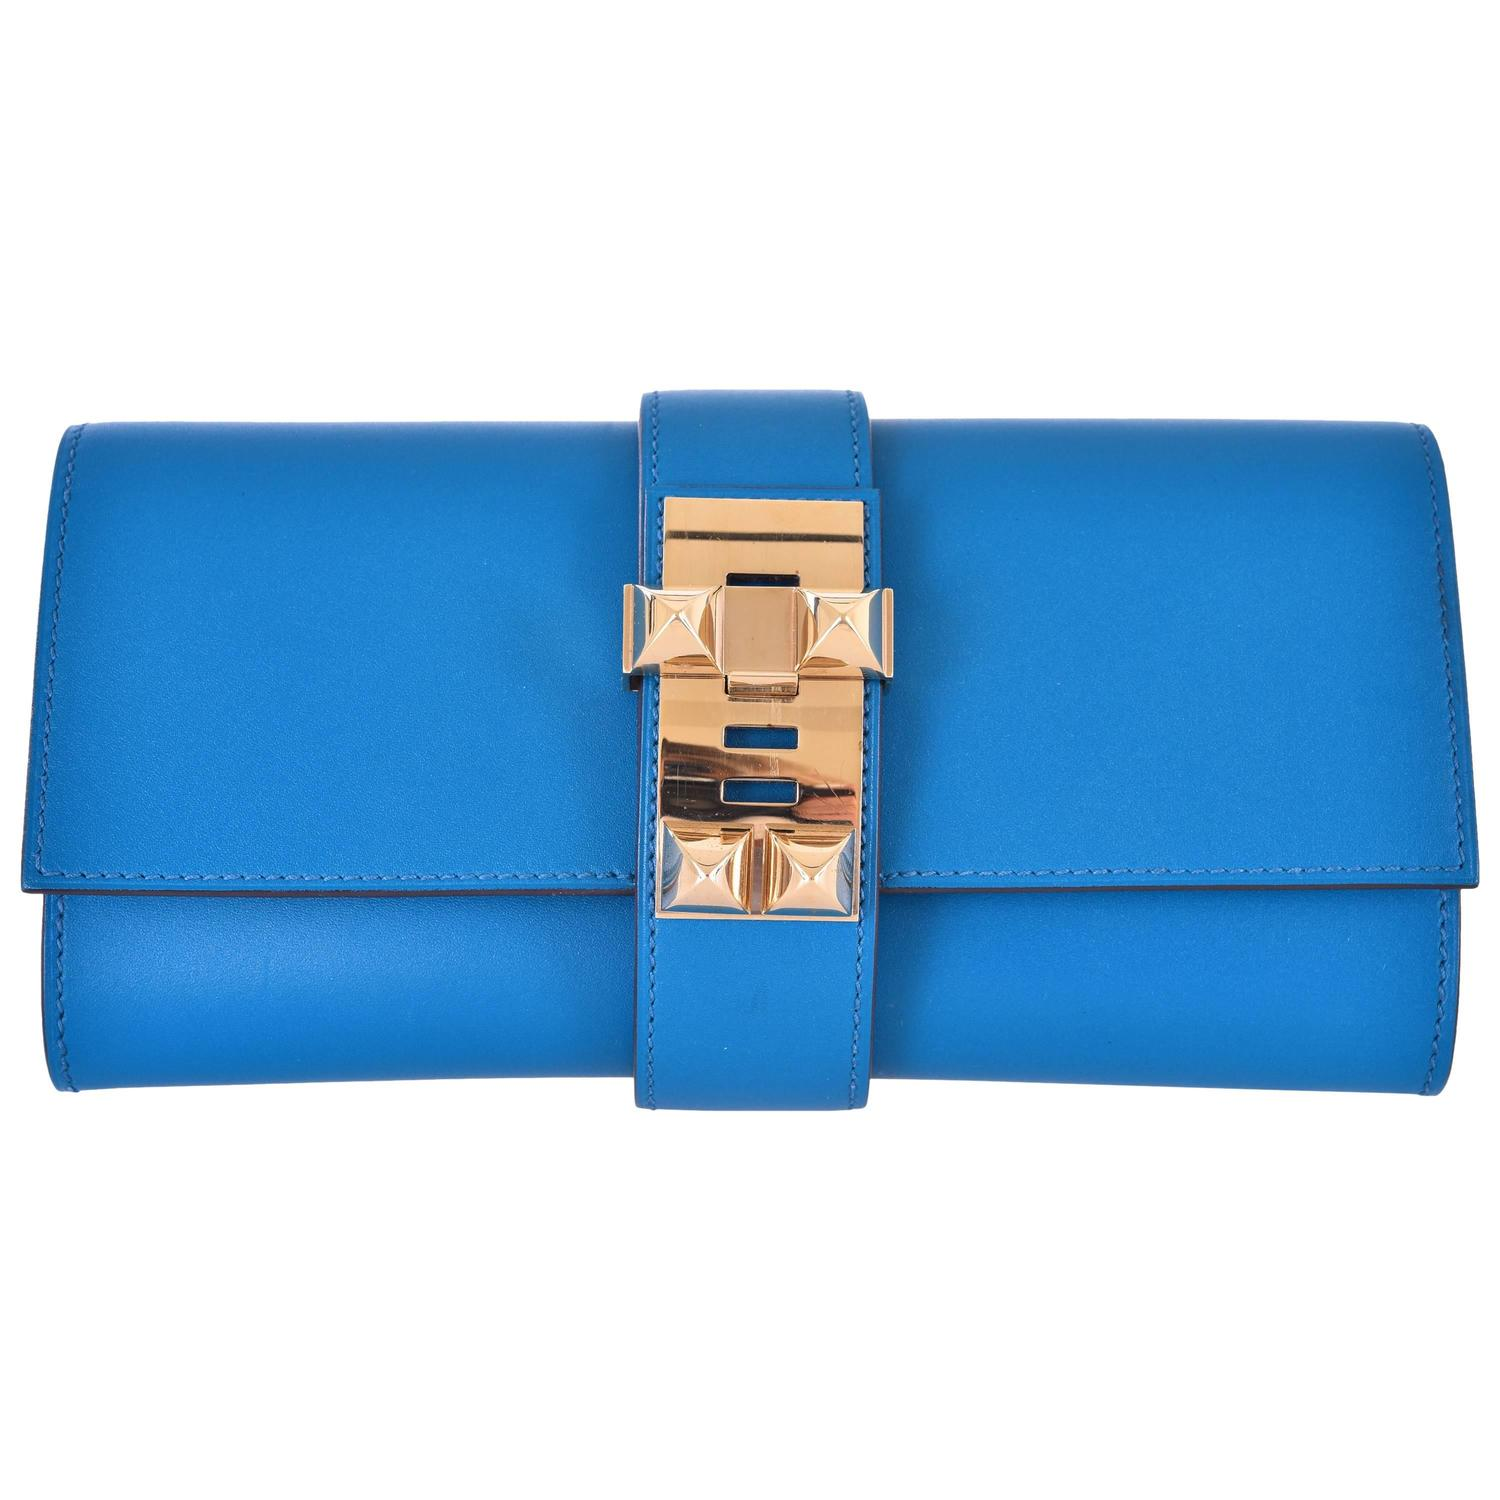 cheap hermes birkin bag - Vintage Herm��s Clutches - 146 For Sale at 1stdibs